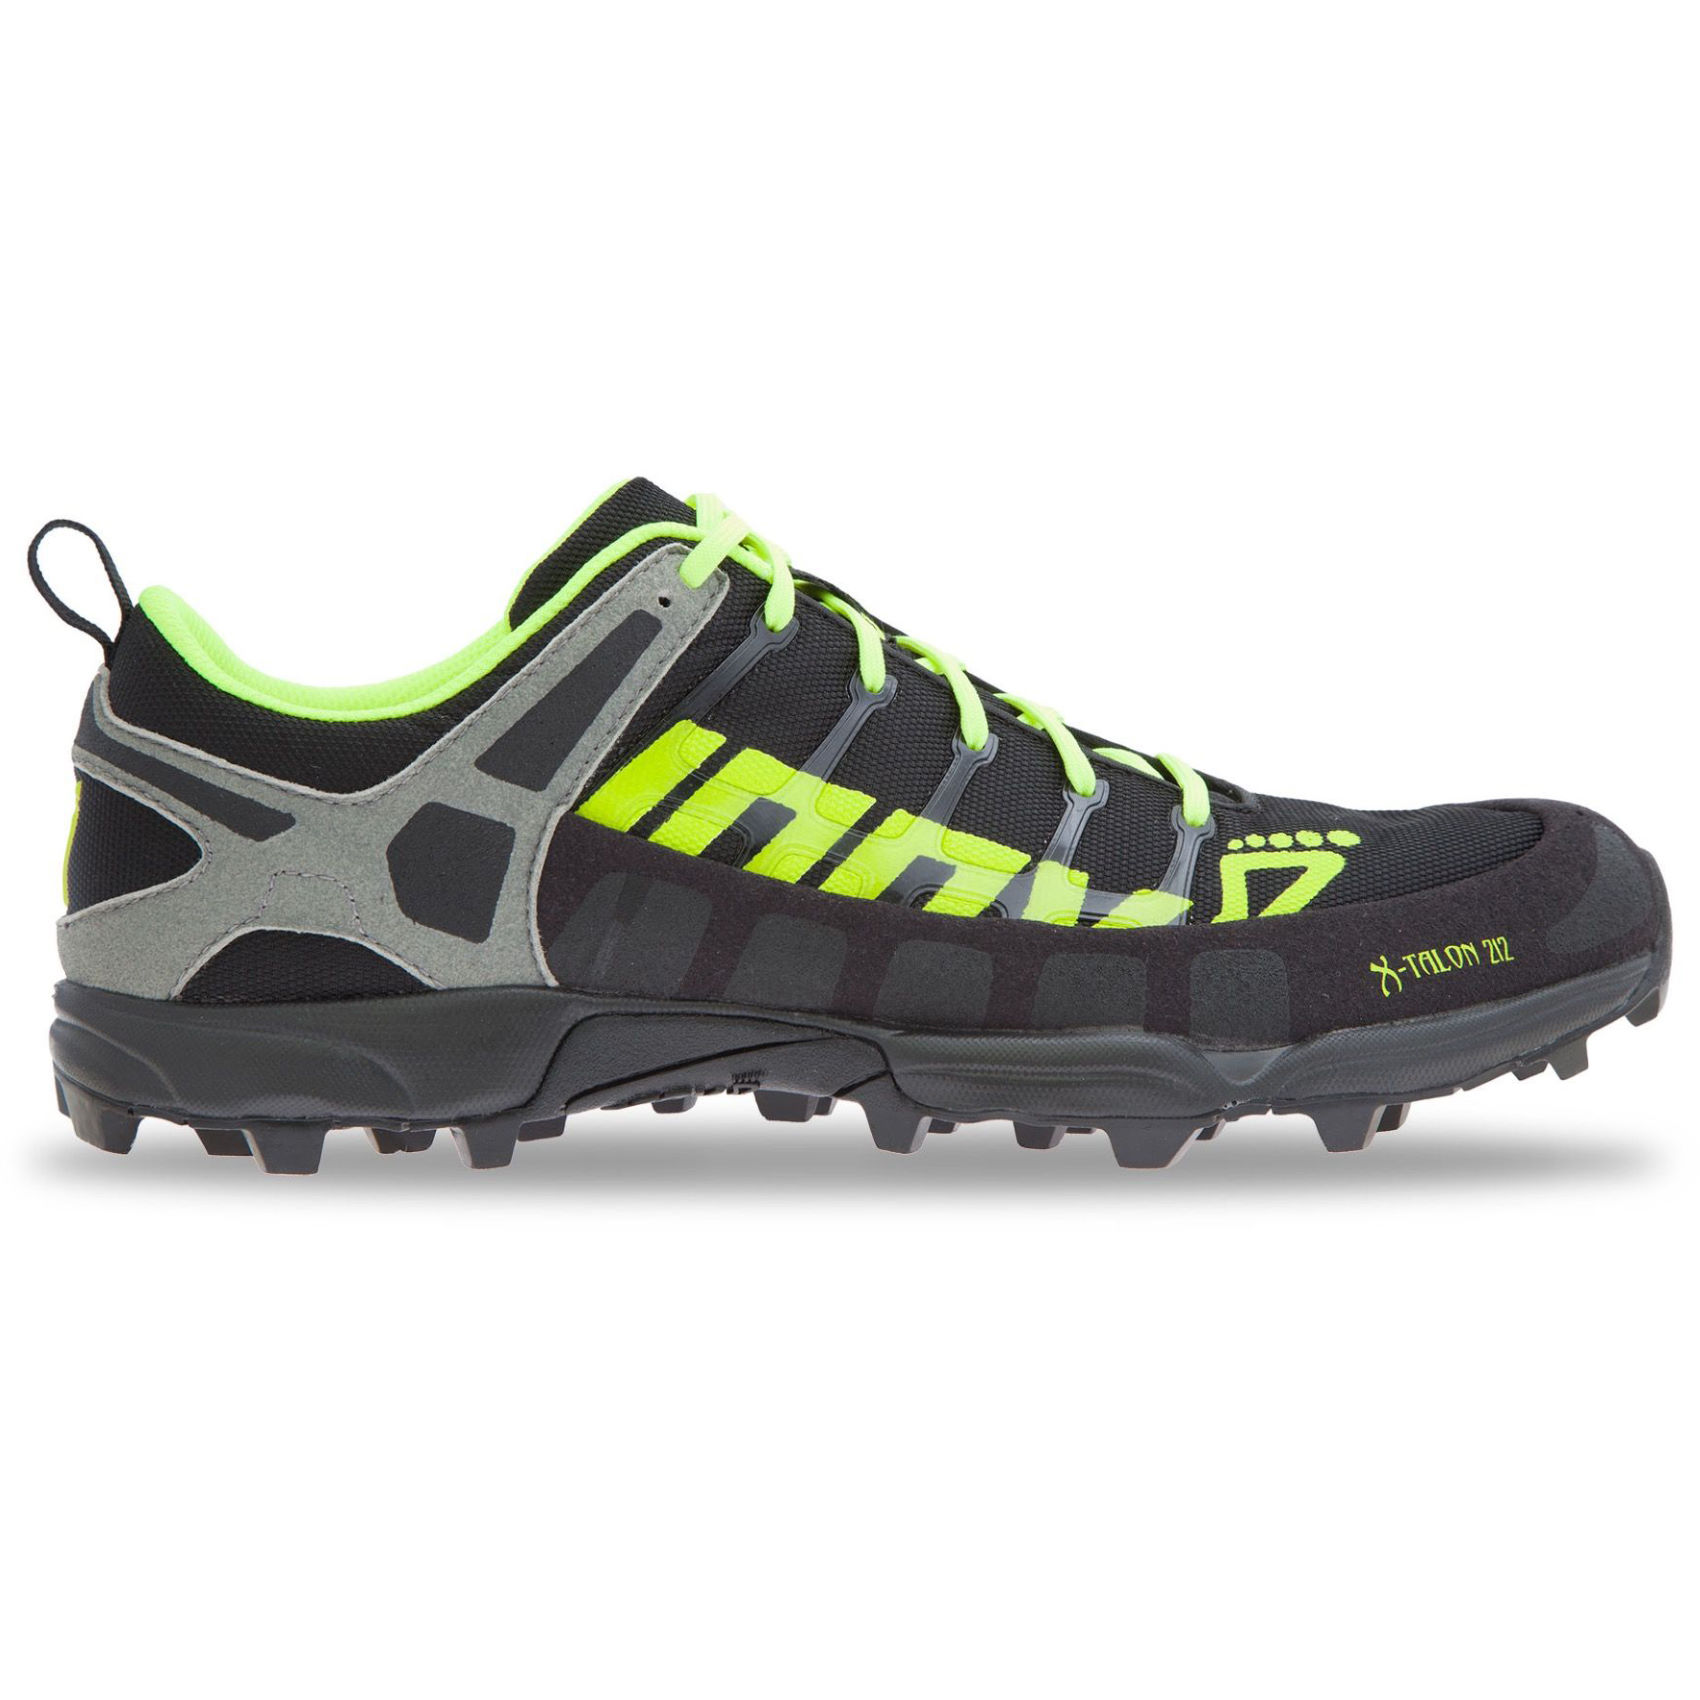 Inov 8 X Talon 212 Precision Shoes